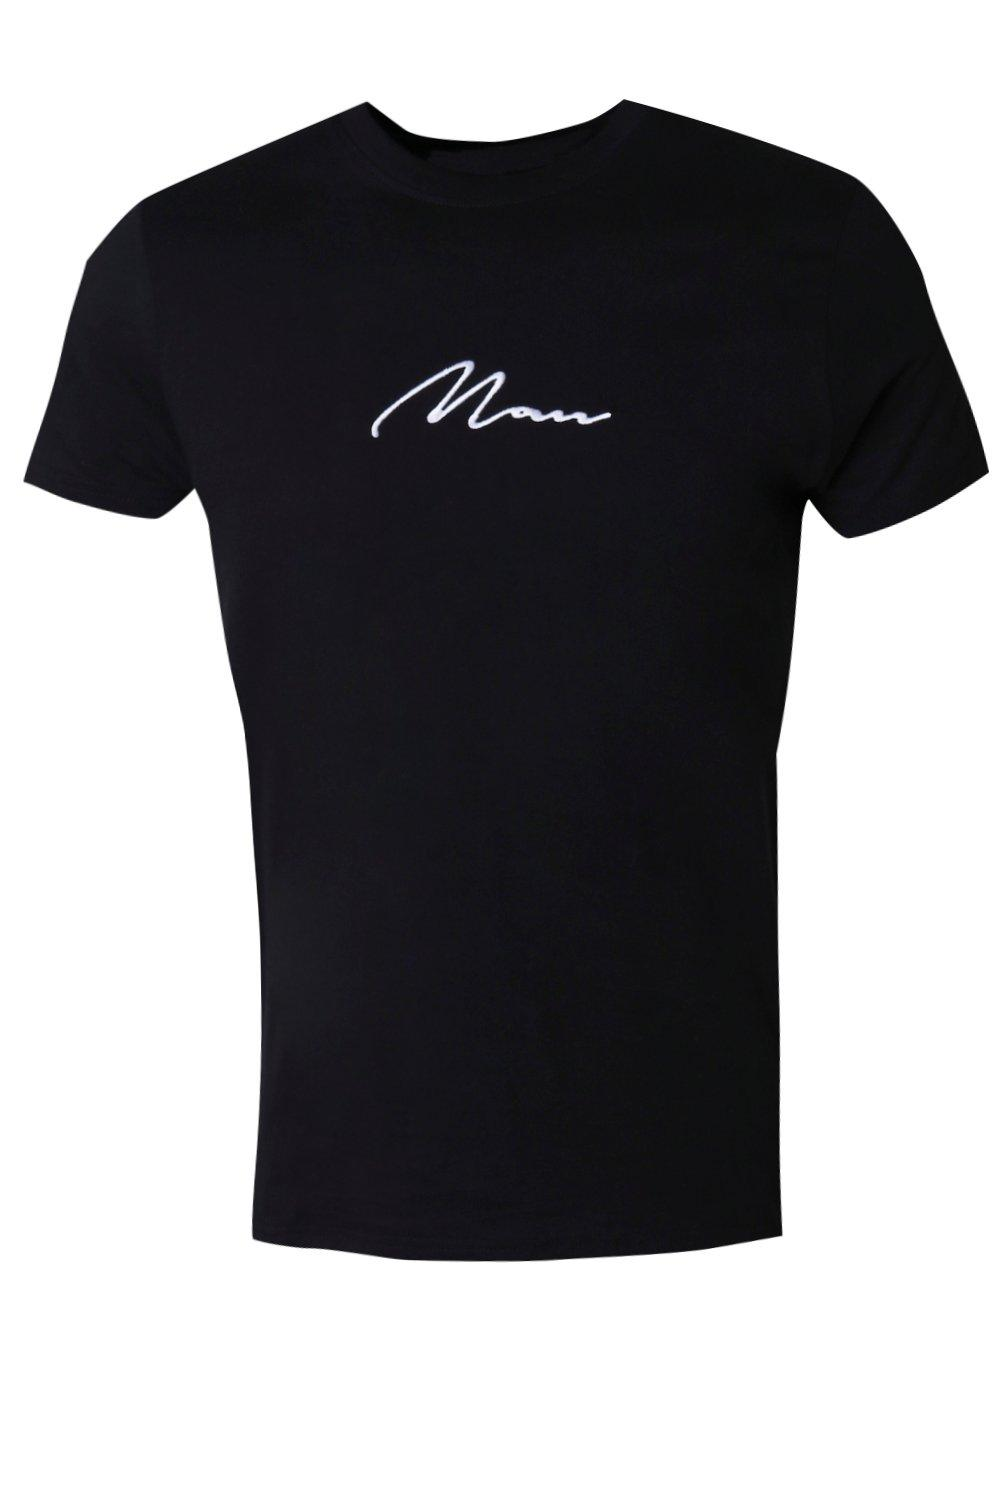 boohooMAN black MAN Signature Embroidered T-Shirt